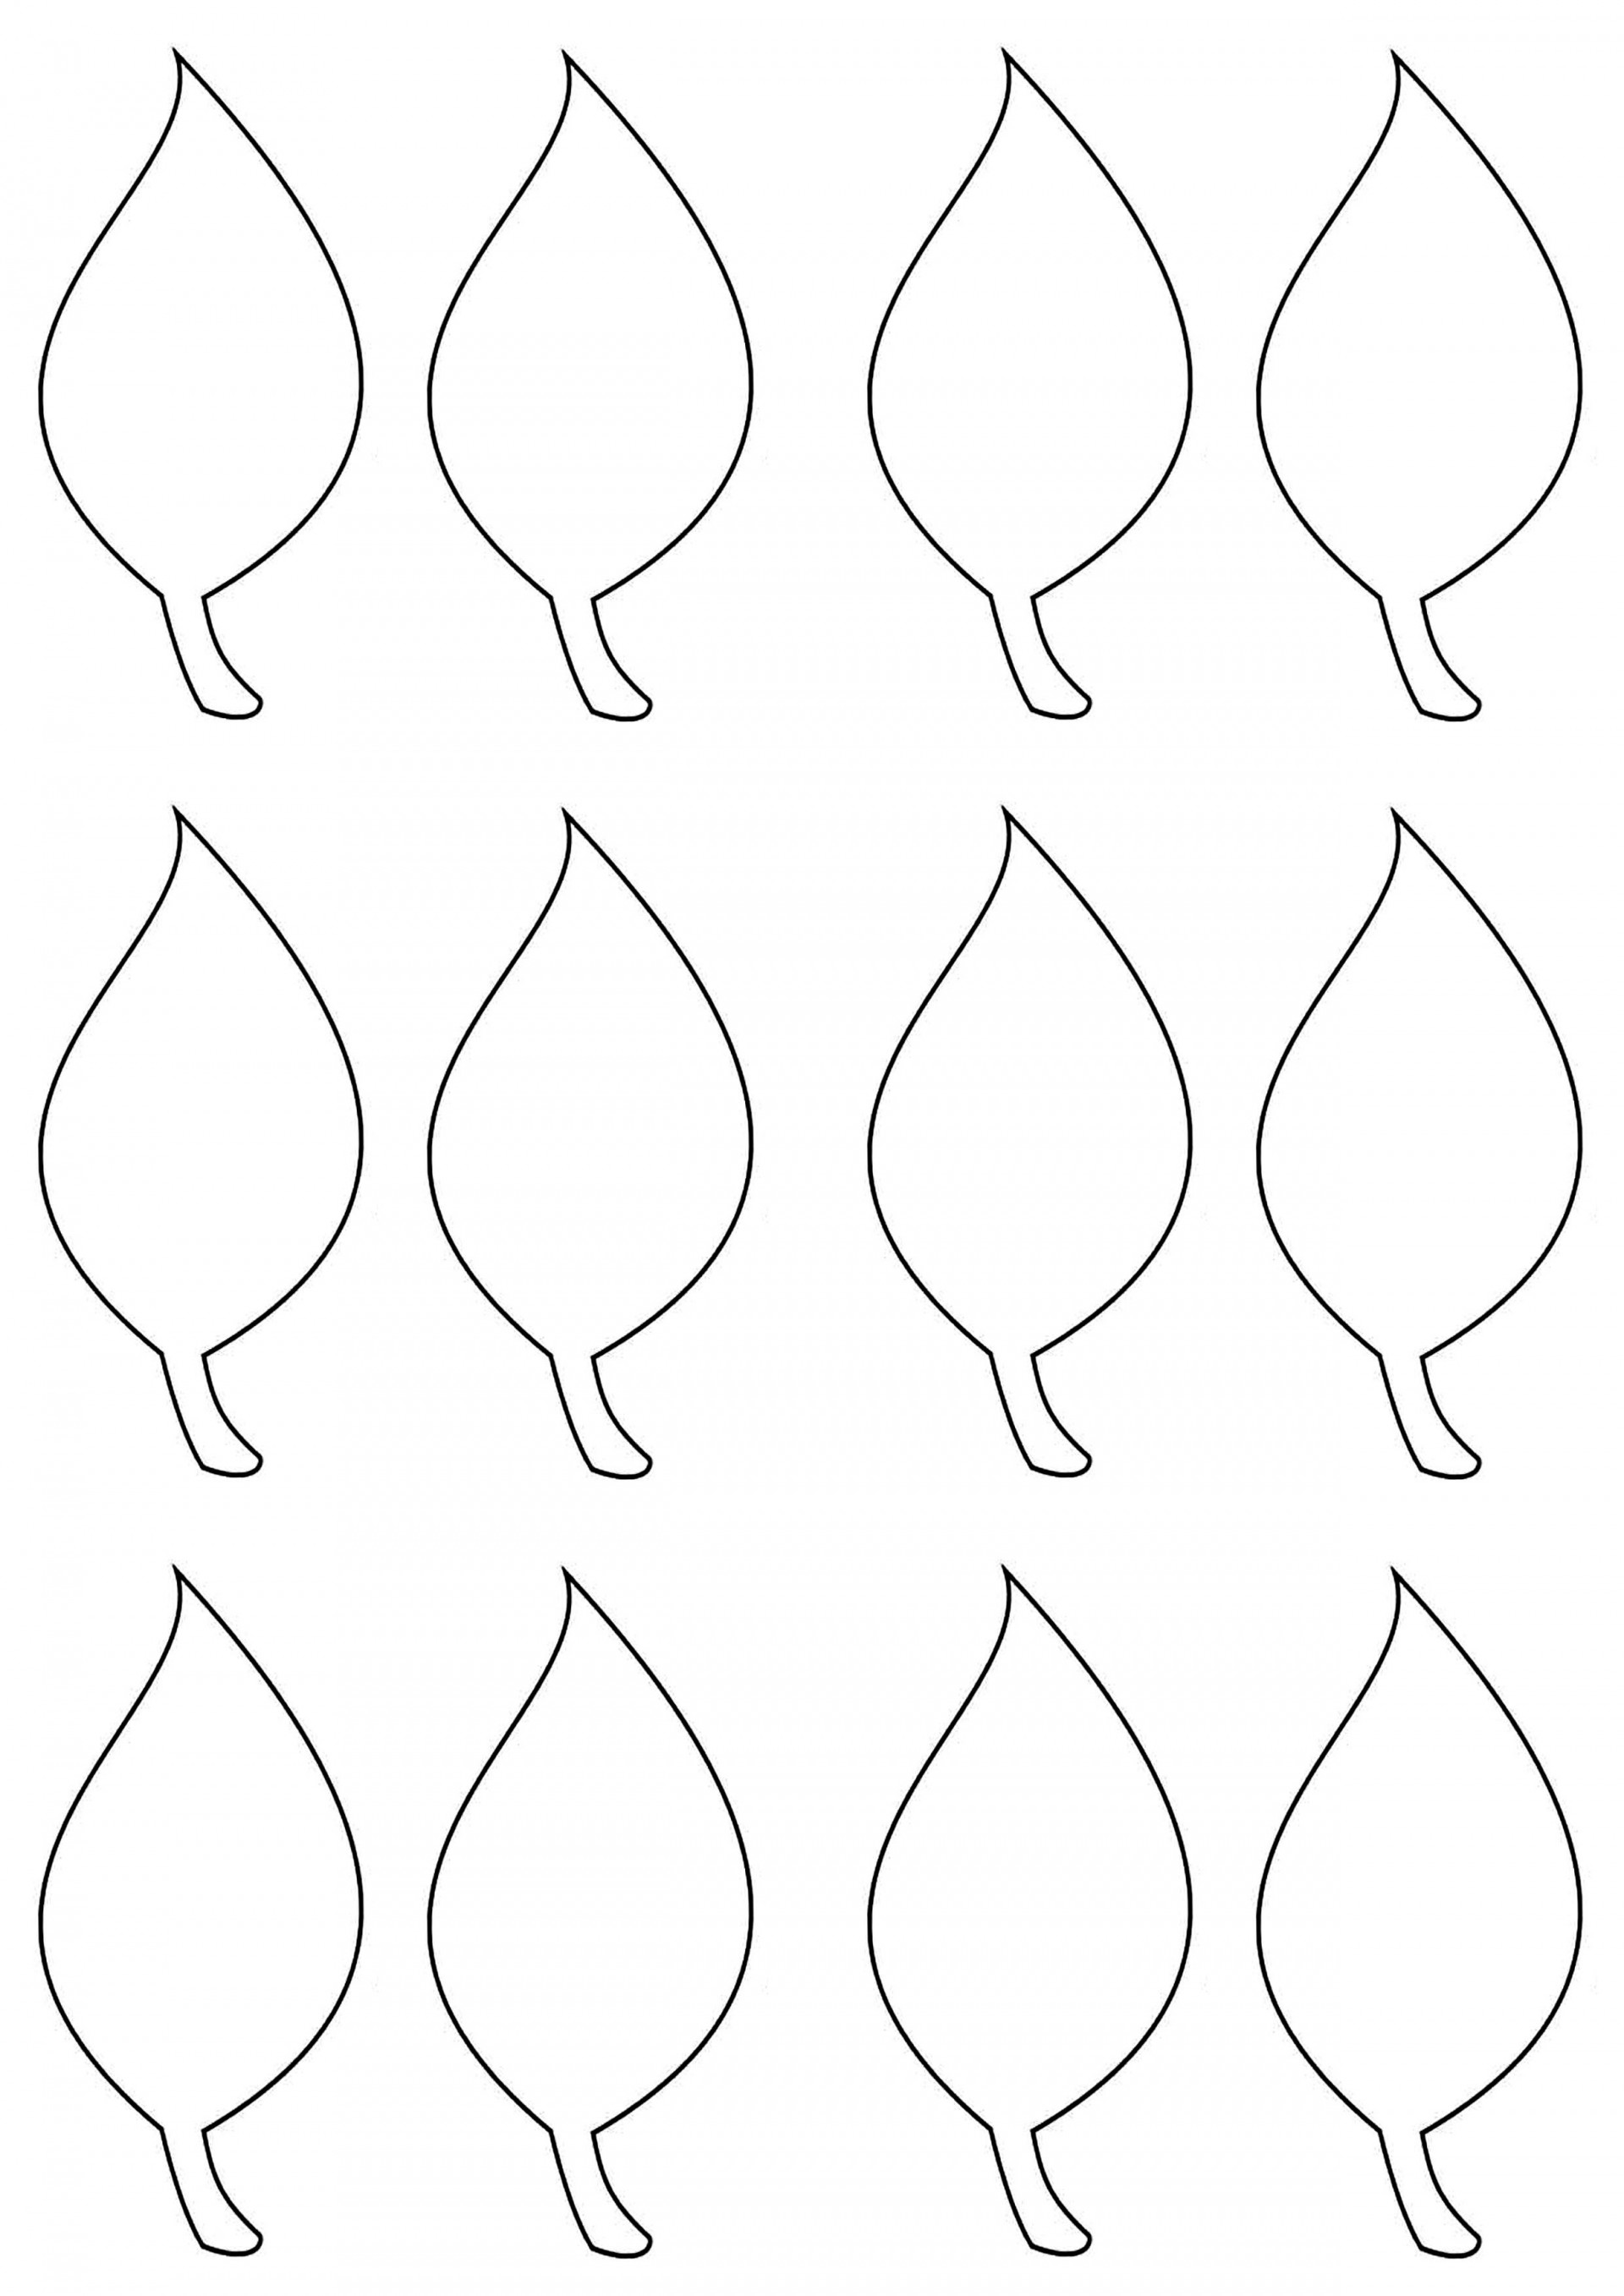 003 Simple Leaf Template With Line Sample  Fall Printable Blank1920